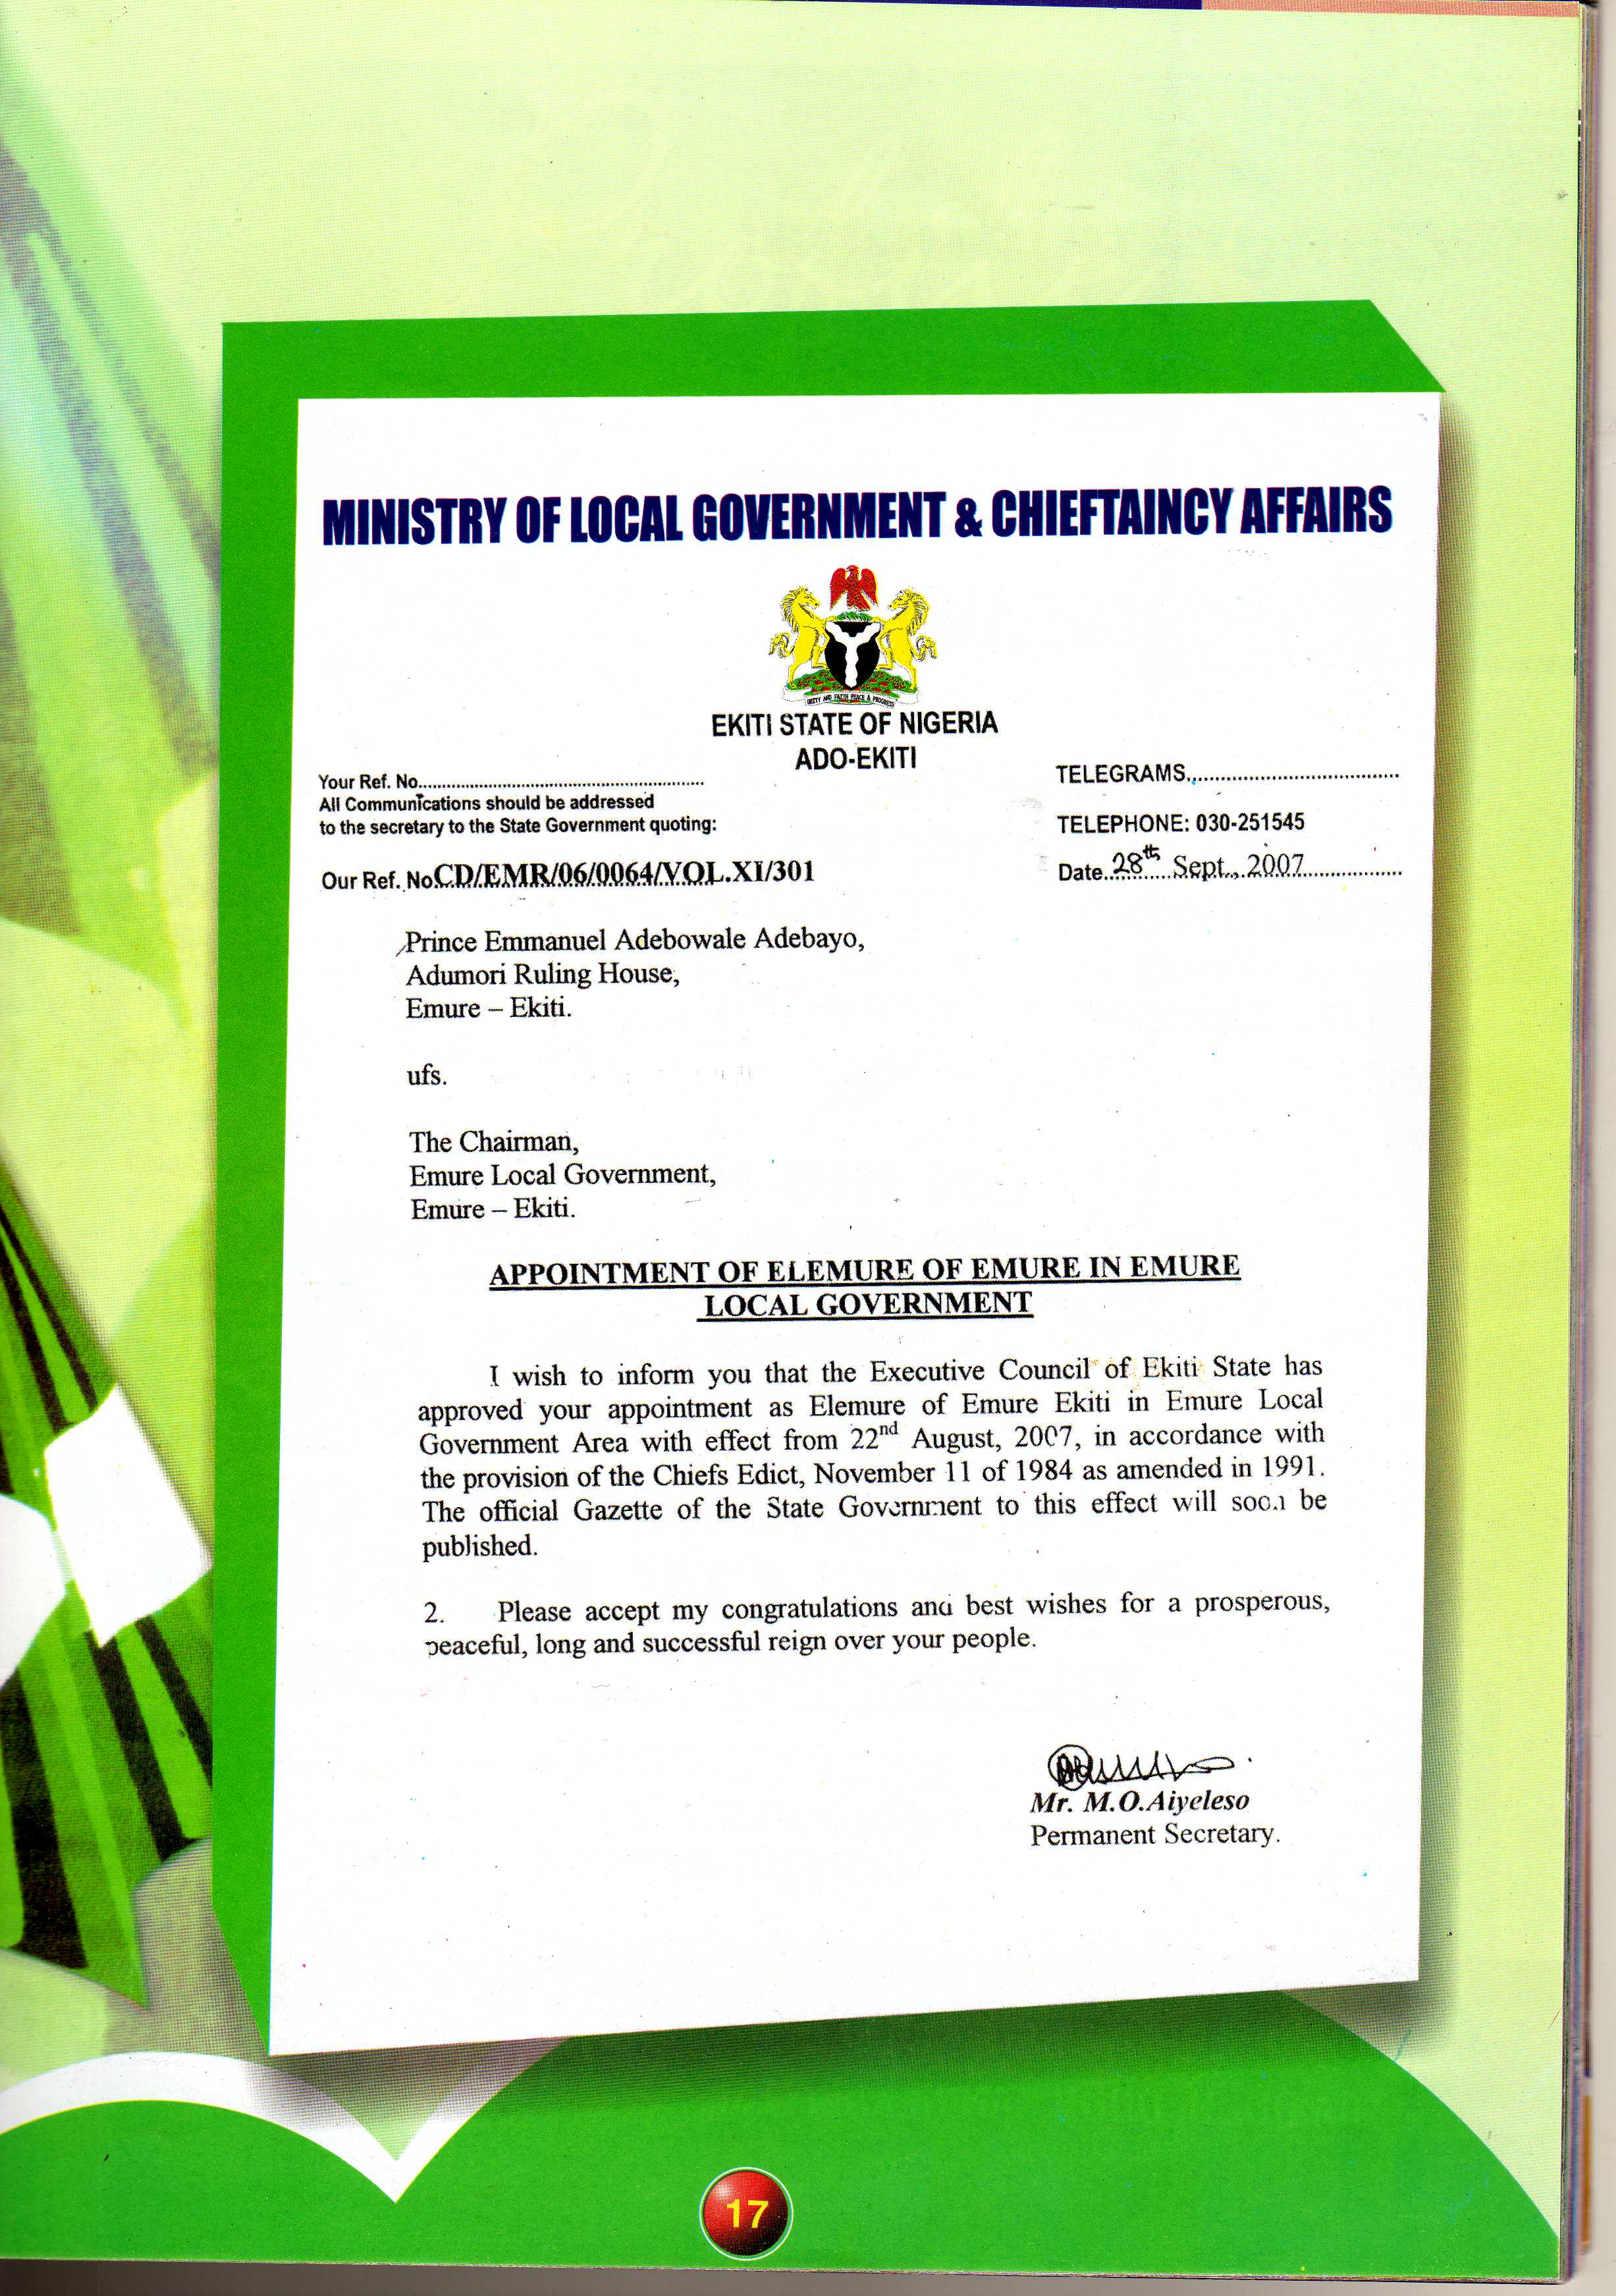 letterofappointment.jpg